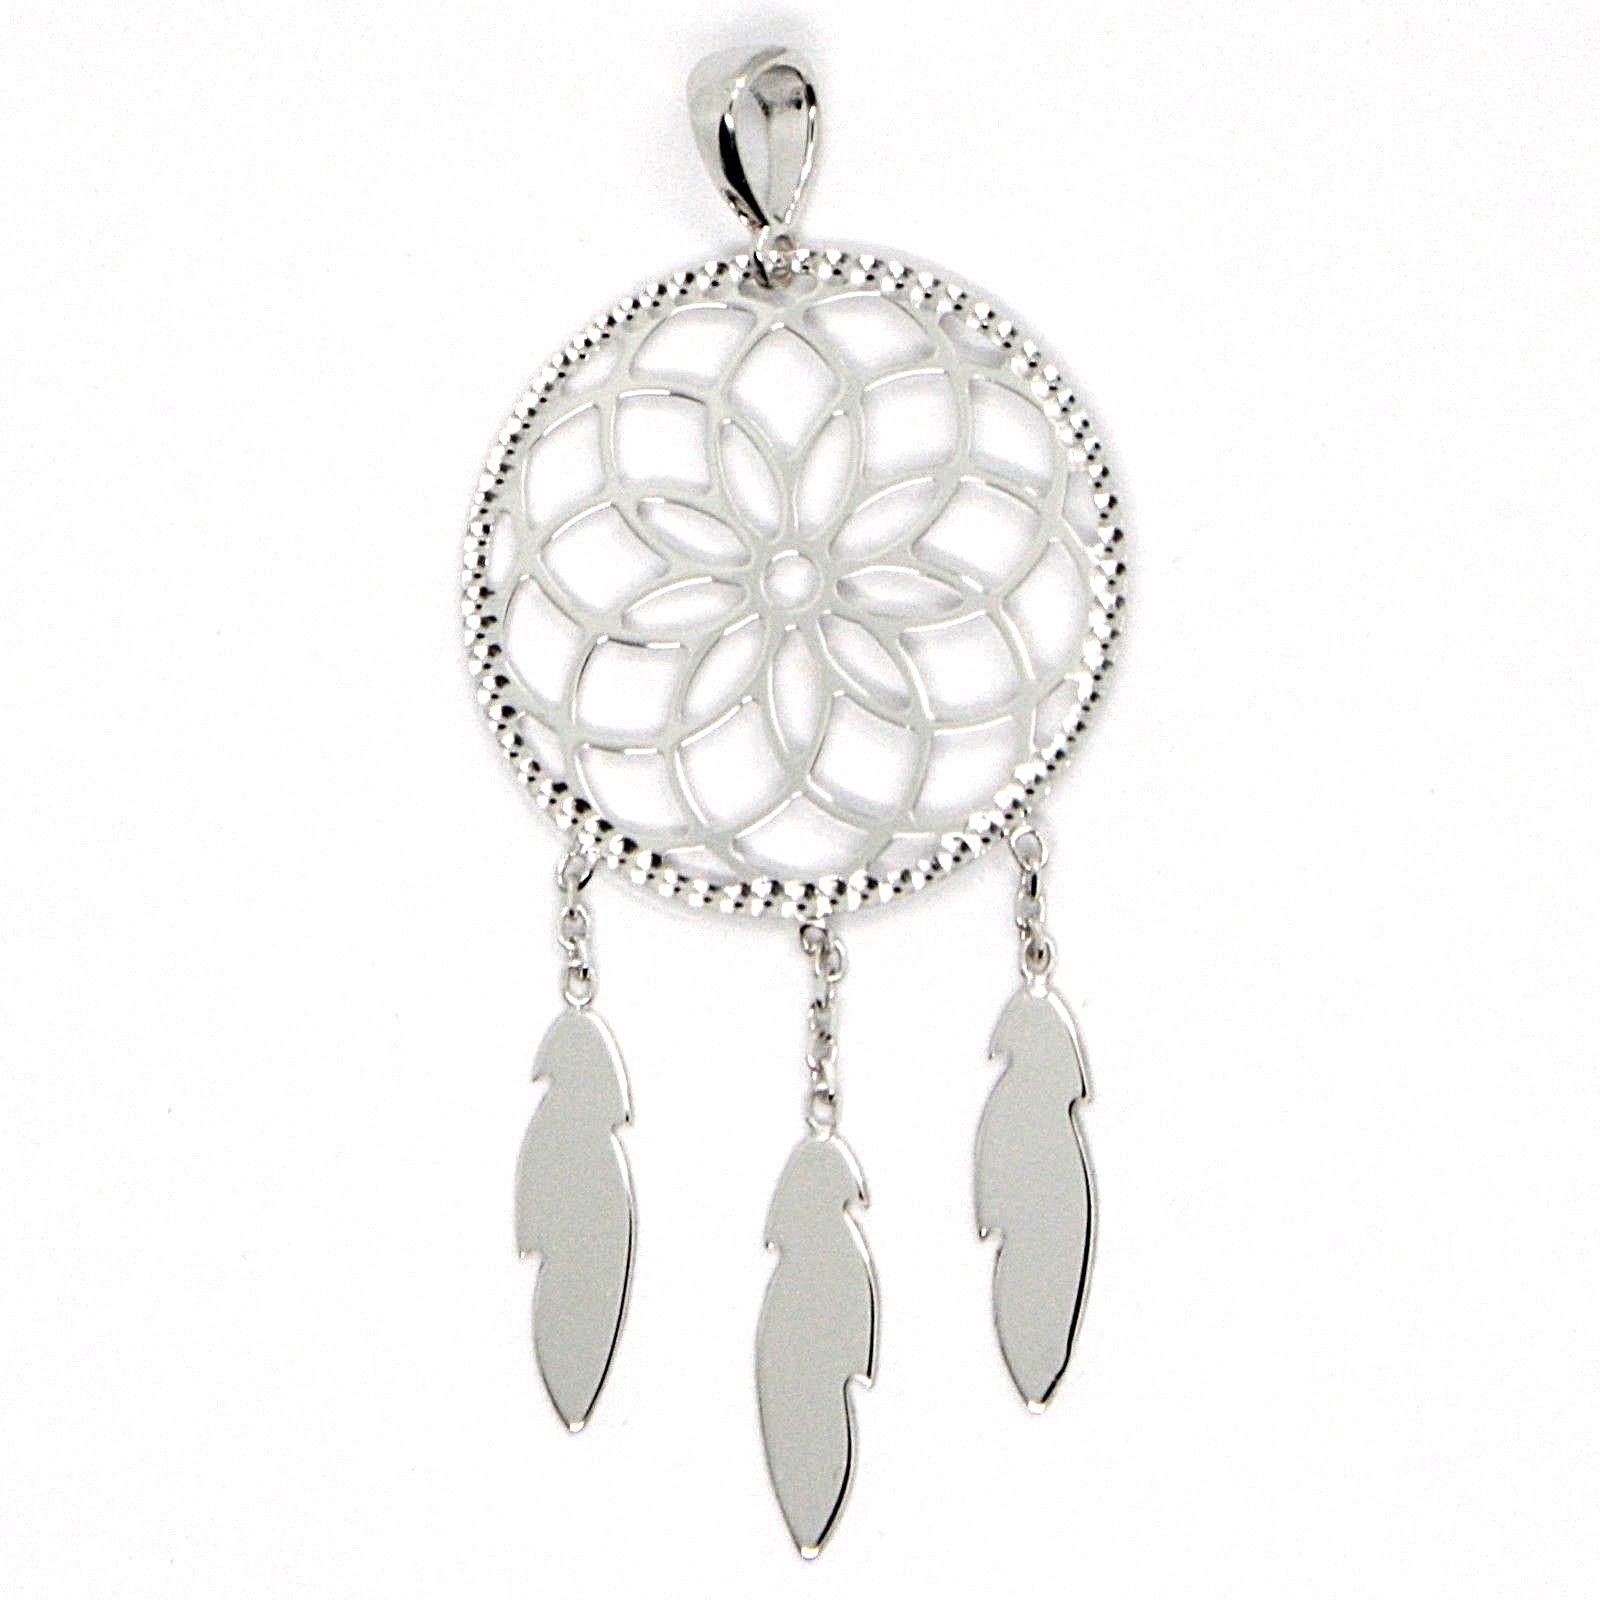 18K WHITE GOLD DREAMCATCHER PENDANT, FEATHER, MADE IN ITALY, 1.8 INCHES, 45 MM